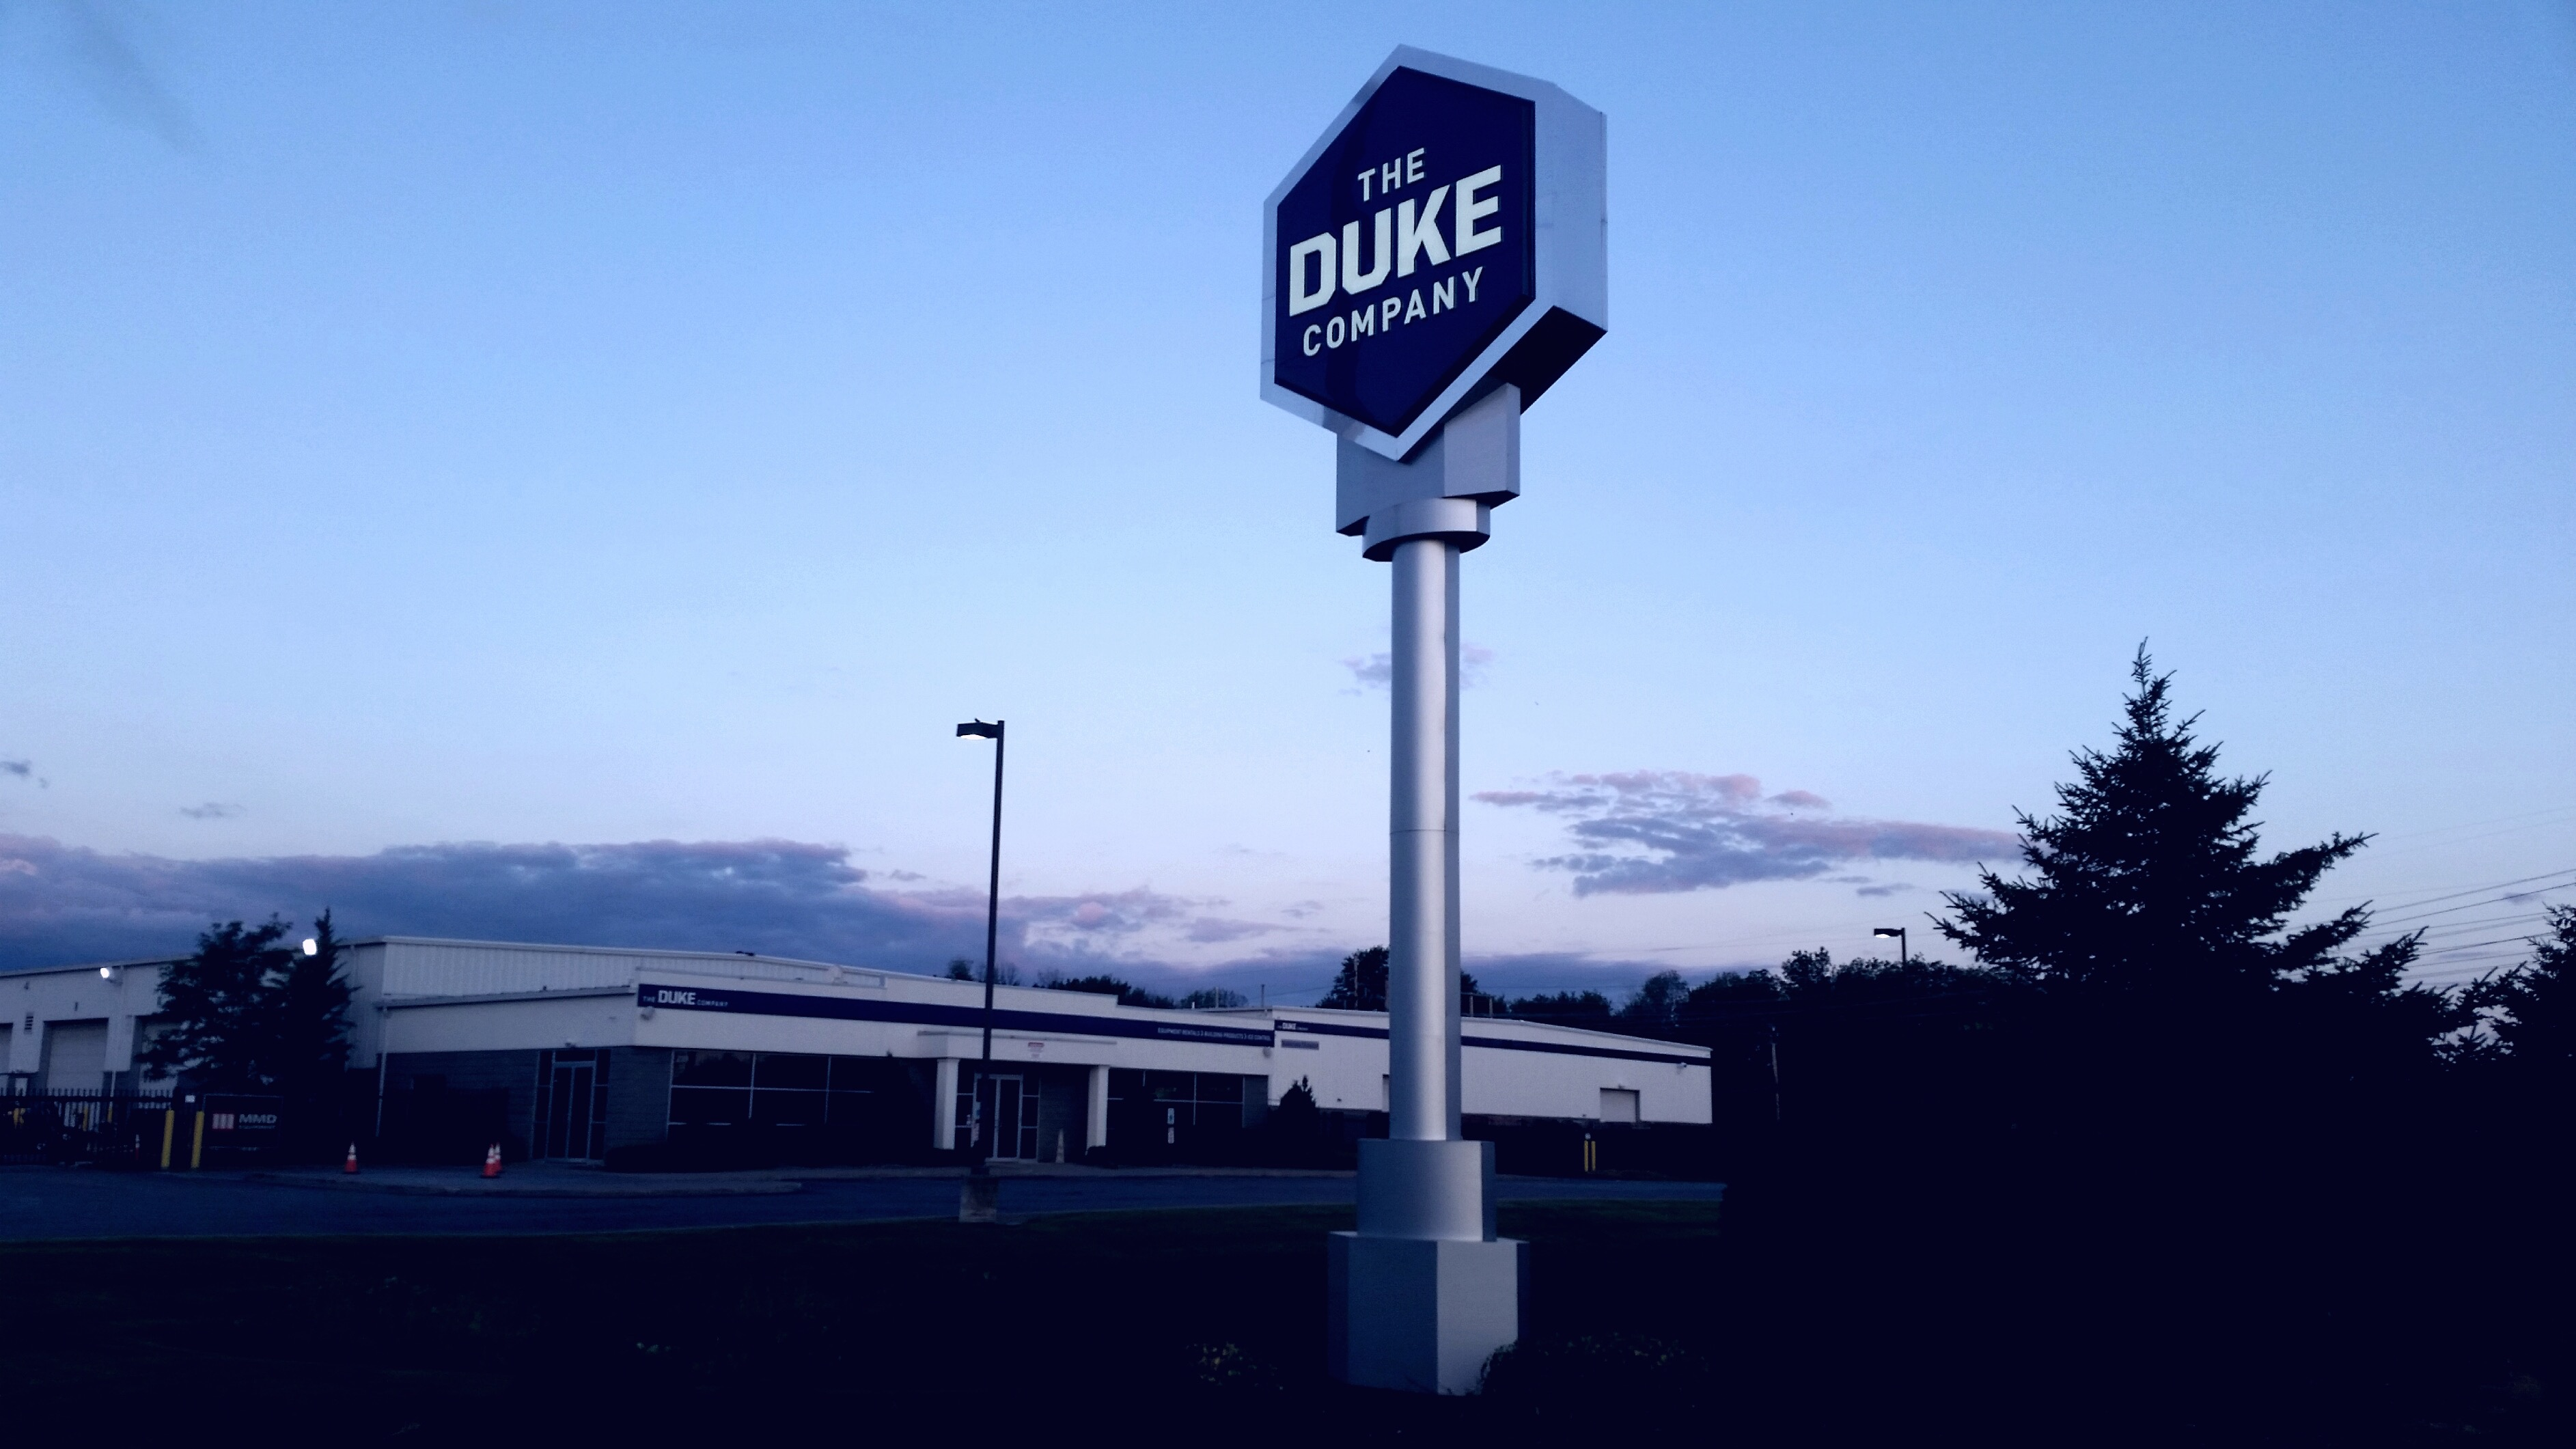 Duke Company in Rochester New York